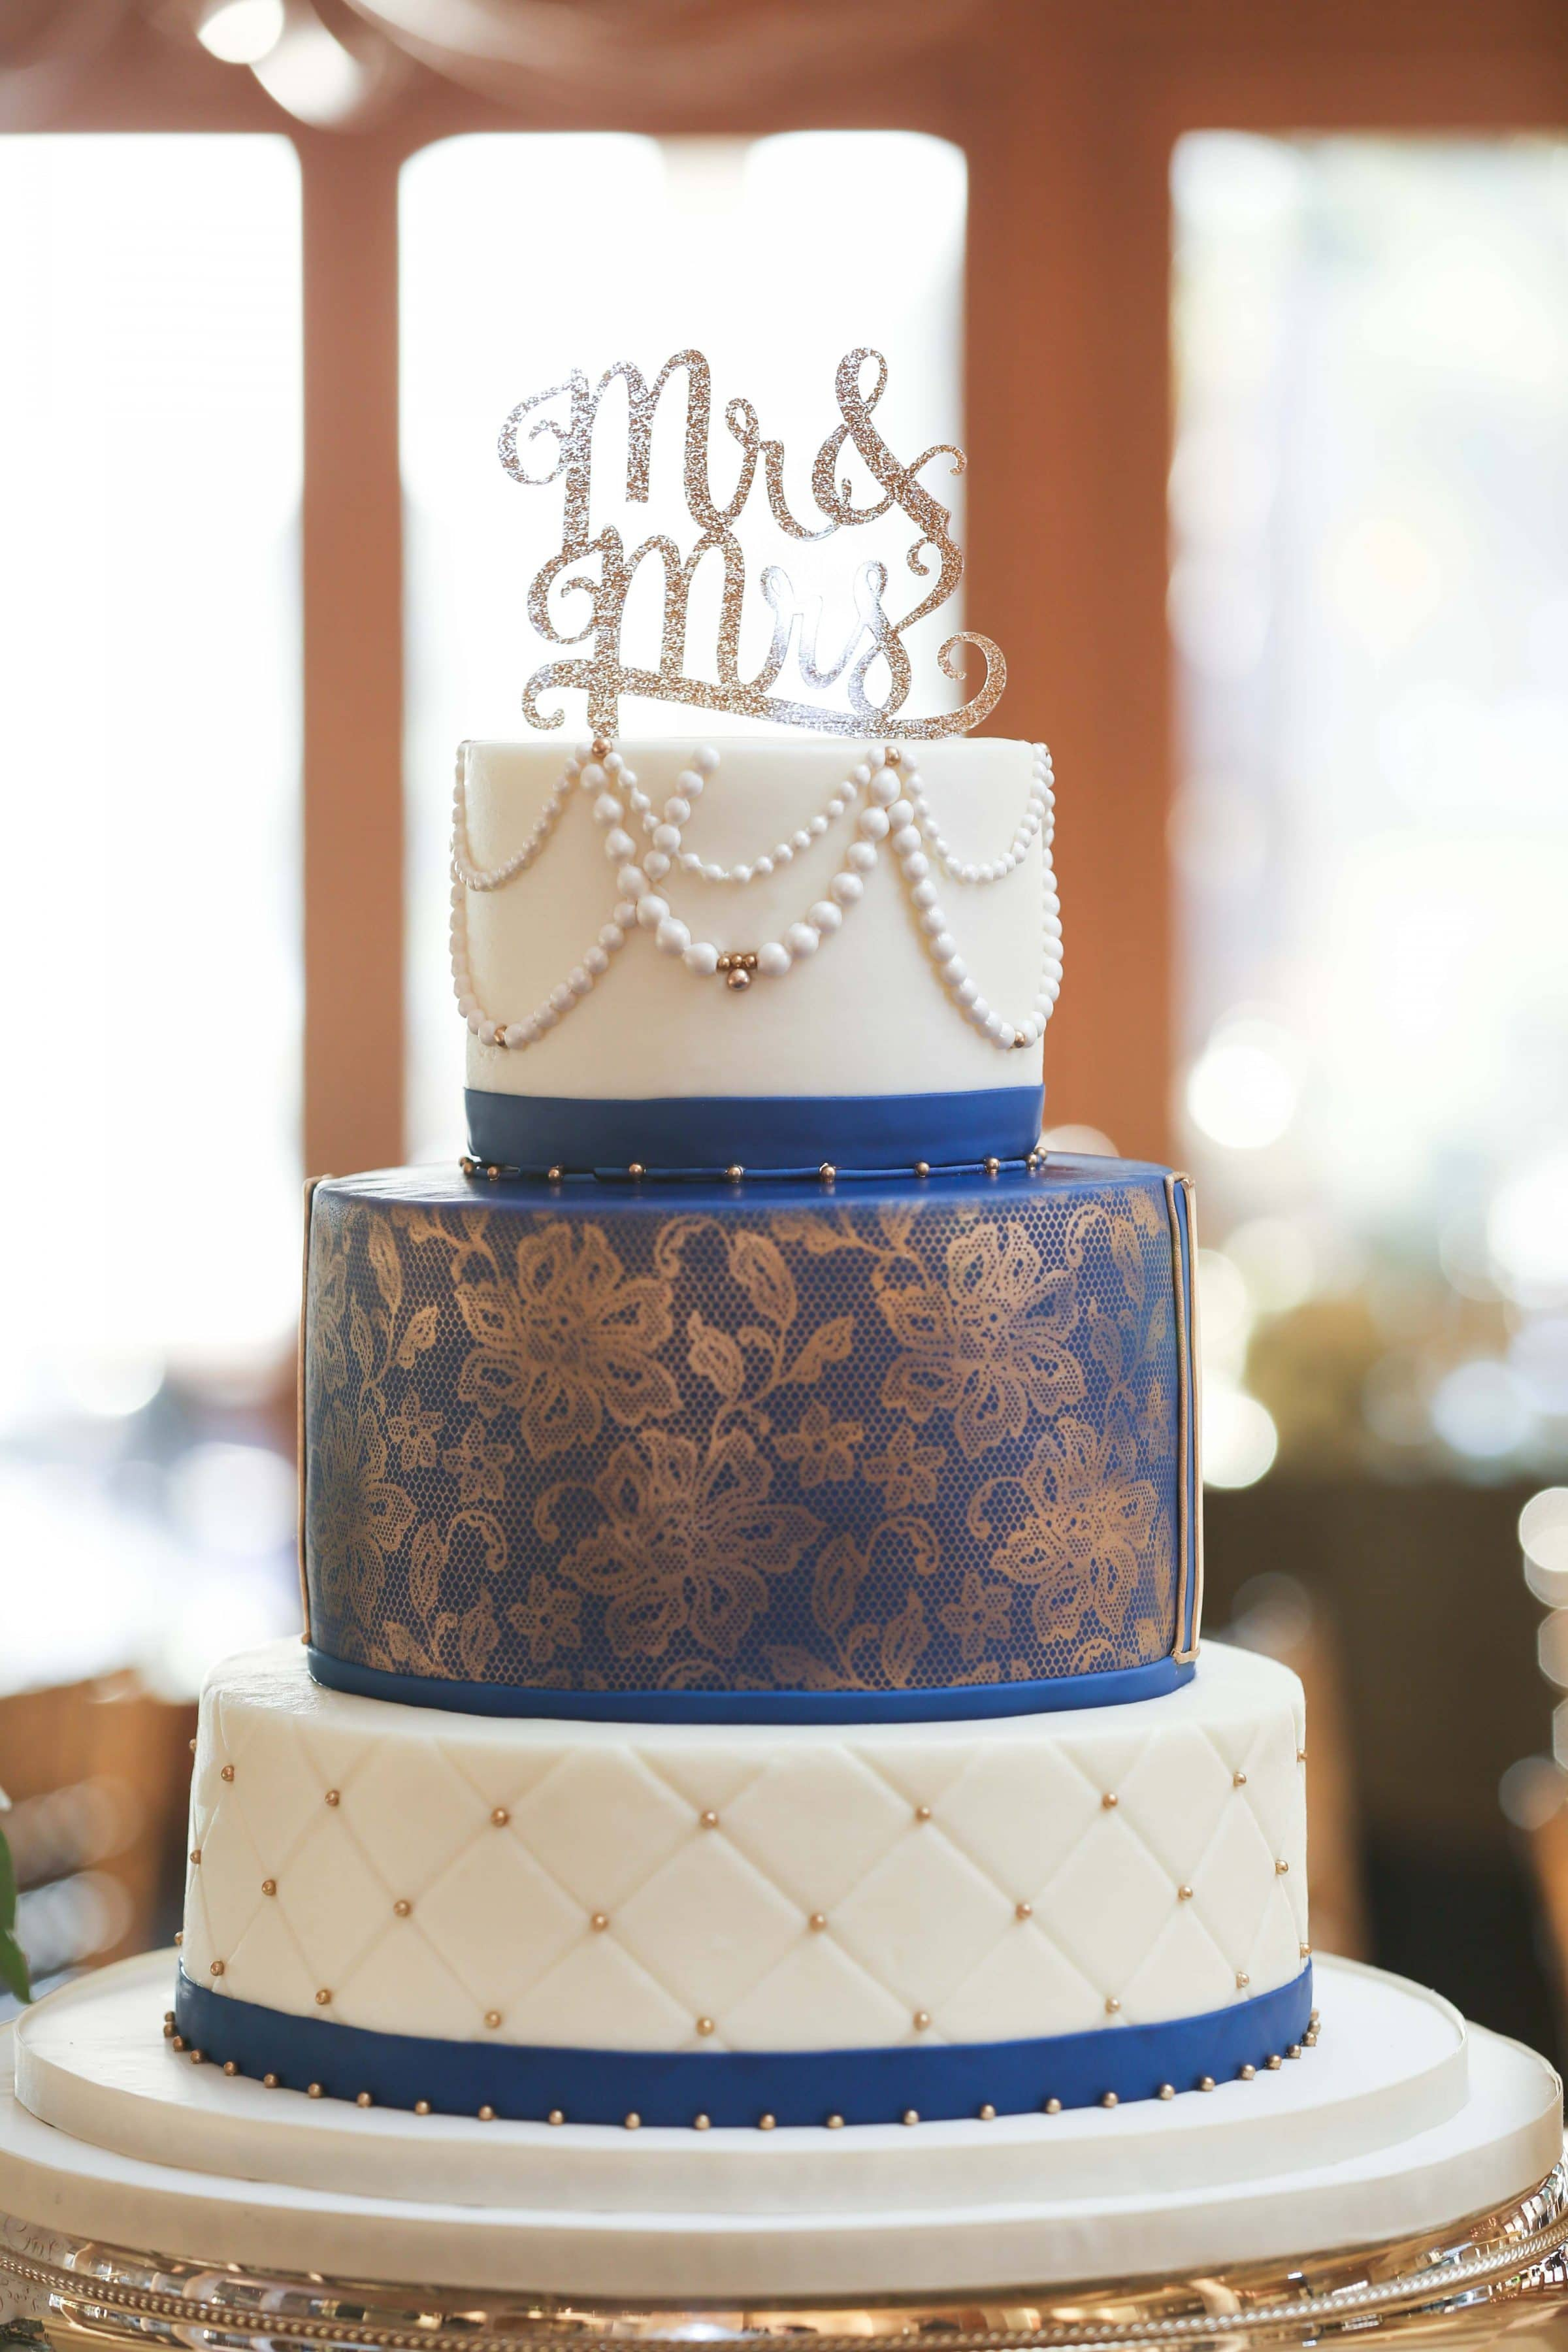 Glamorous blue and gold wedding cake with icing pearl garland